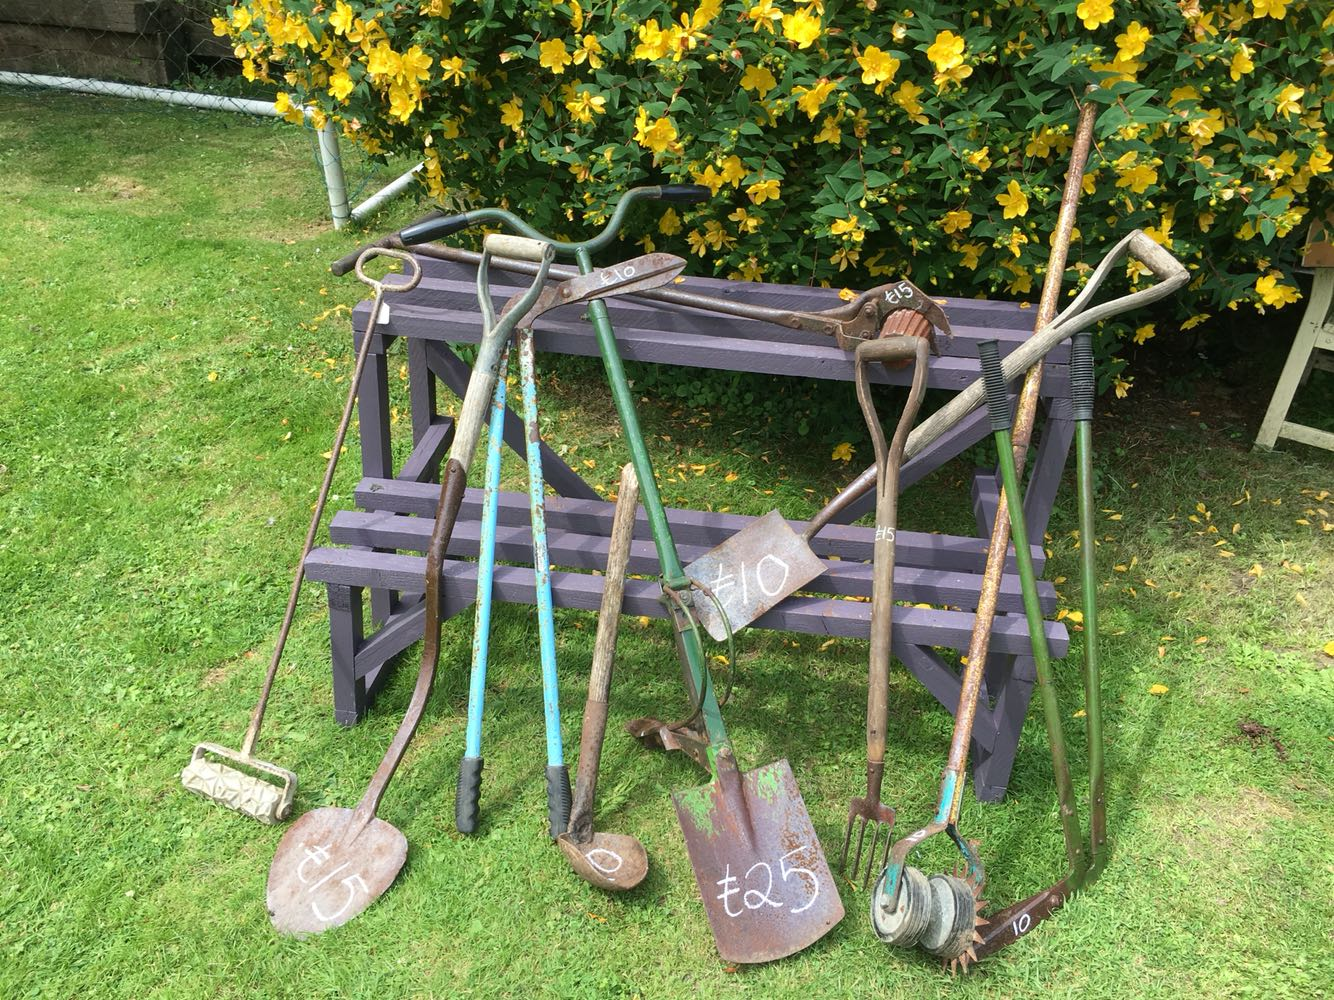 Vintage tools tools for sale in uk view 146 bargains for Garden tools for sale uk